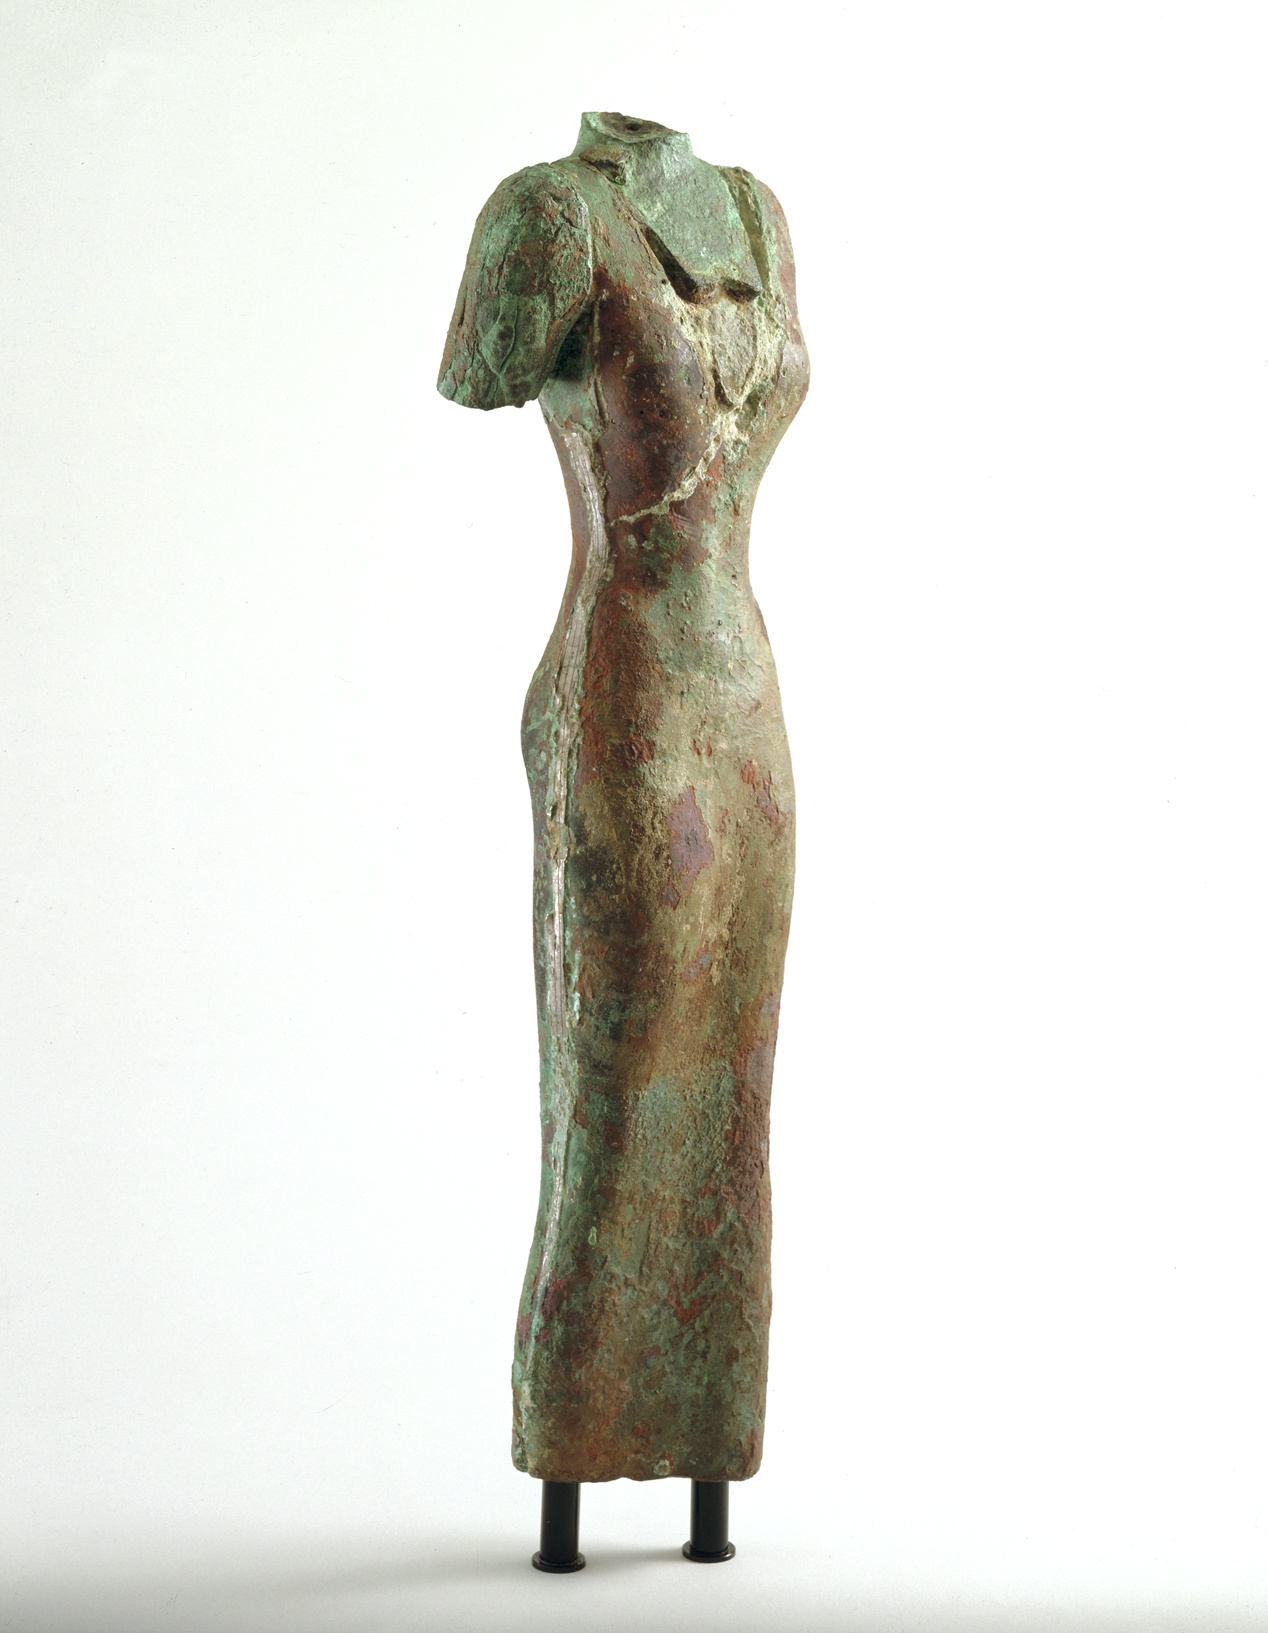 035. Queen (consort of Amenemhat III)